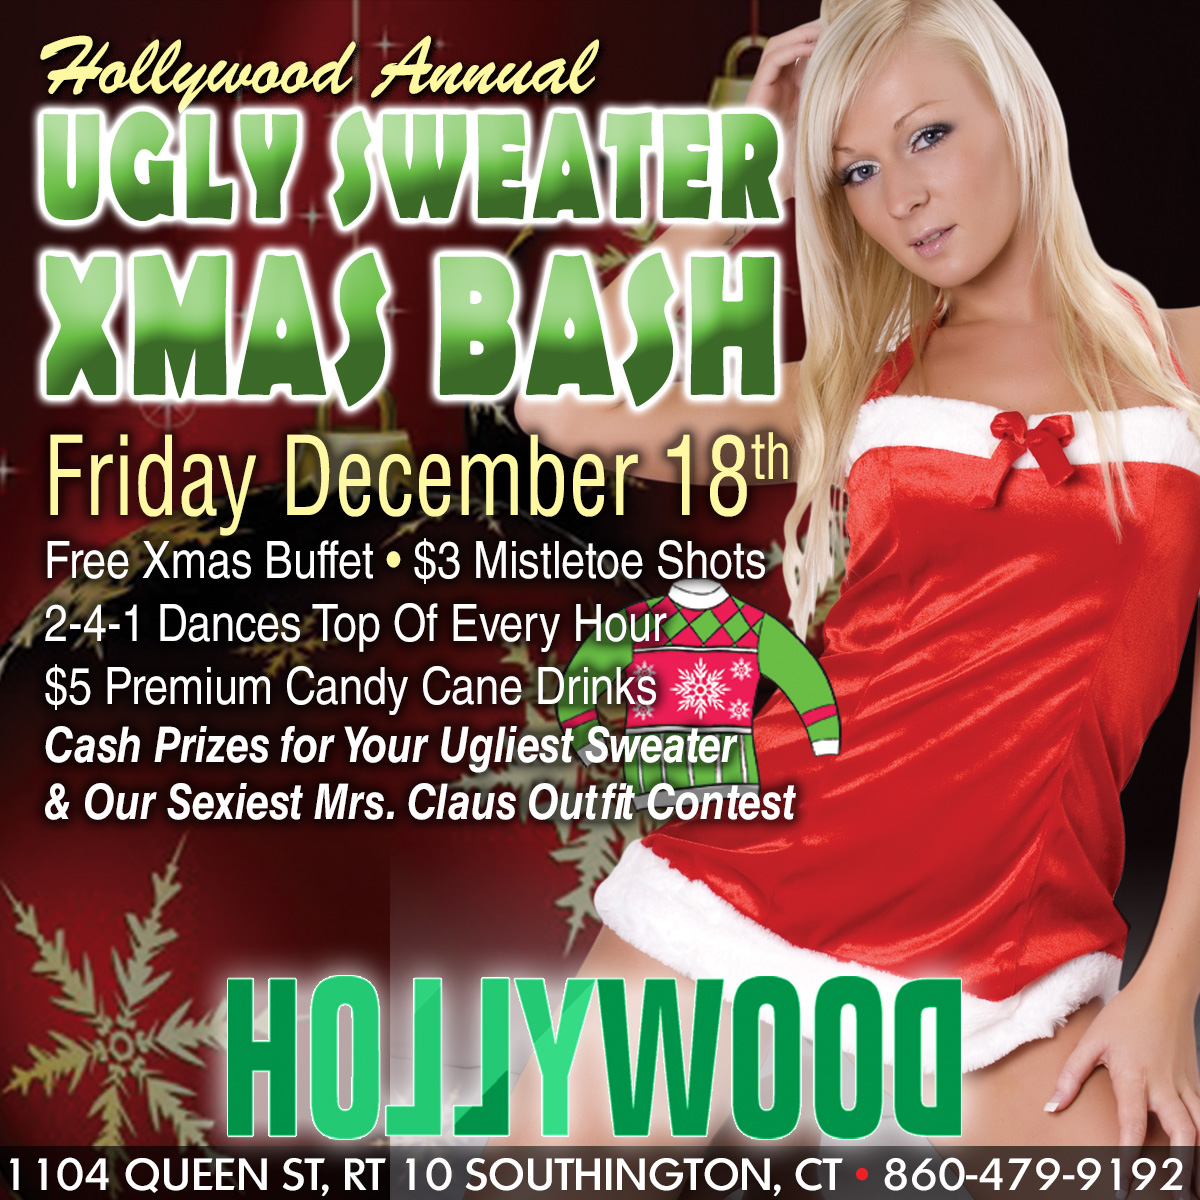 Ugly Sweater XMAS Bash | Hollywood Strip Club Connecticut